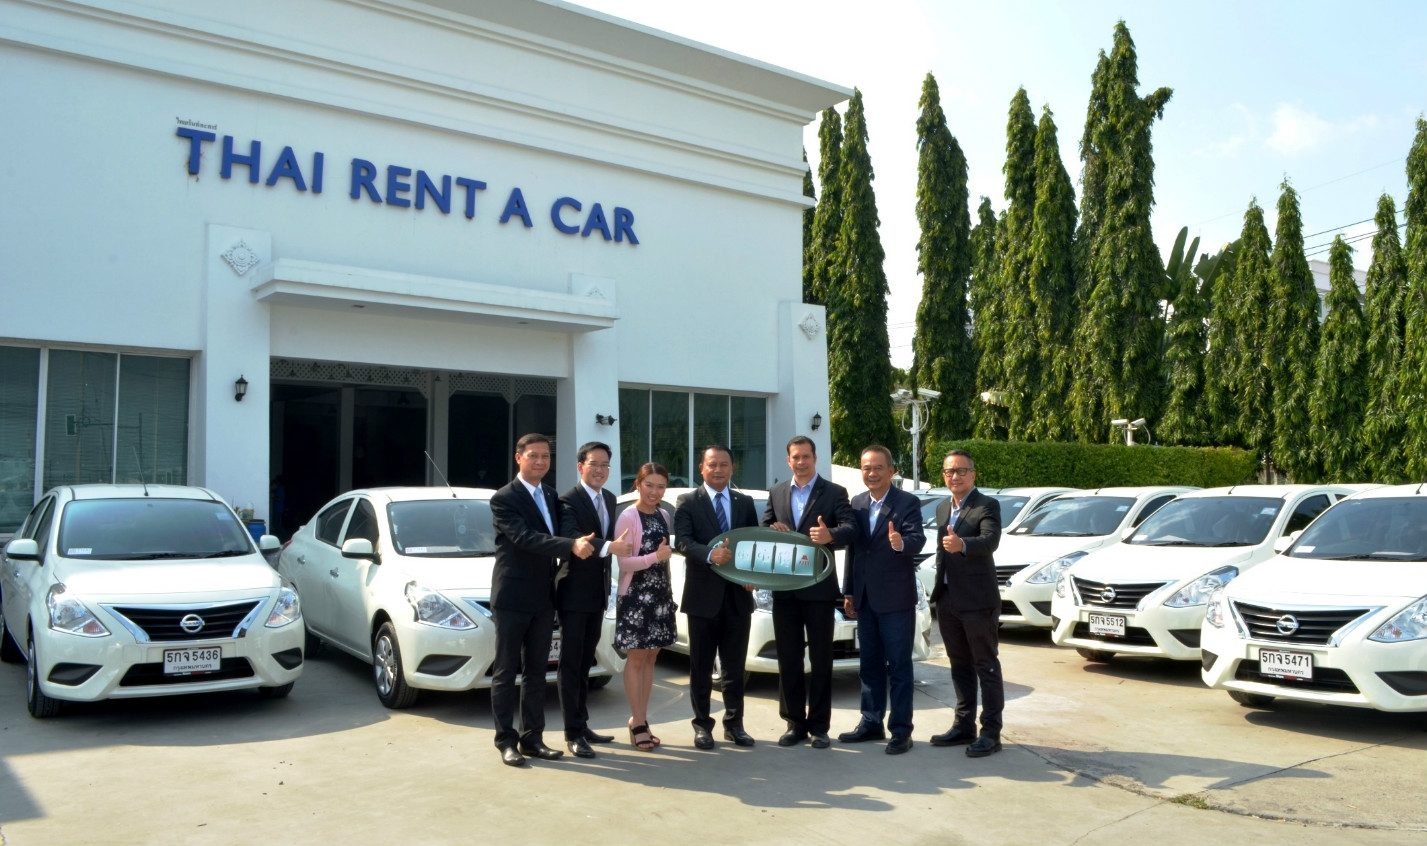 200-almera-to-thai-rent-a-car